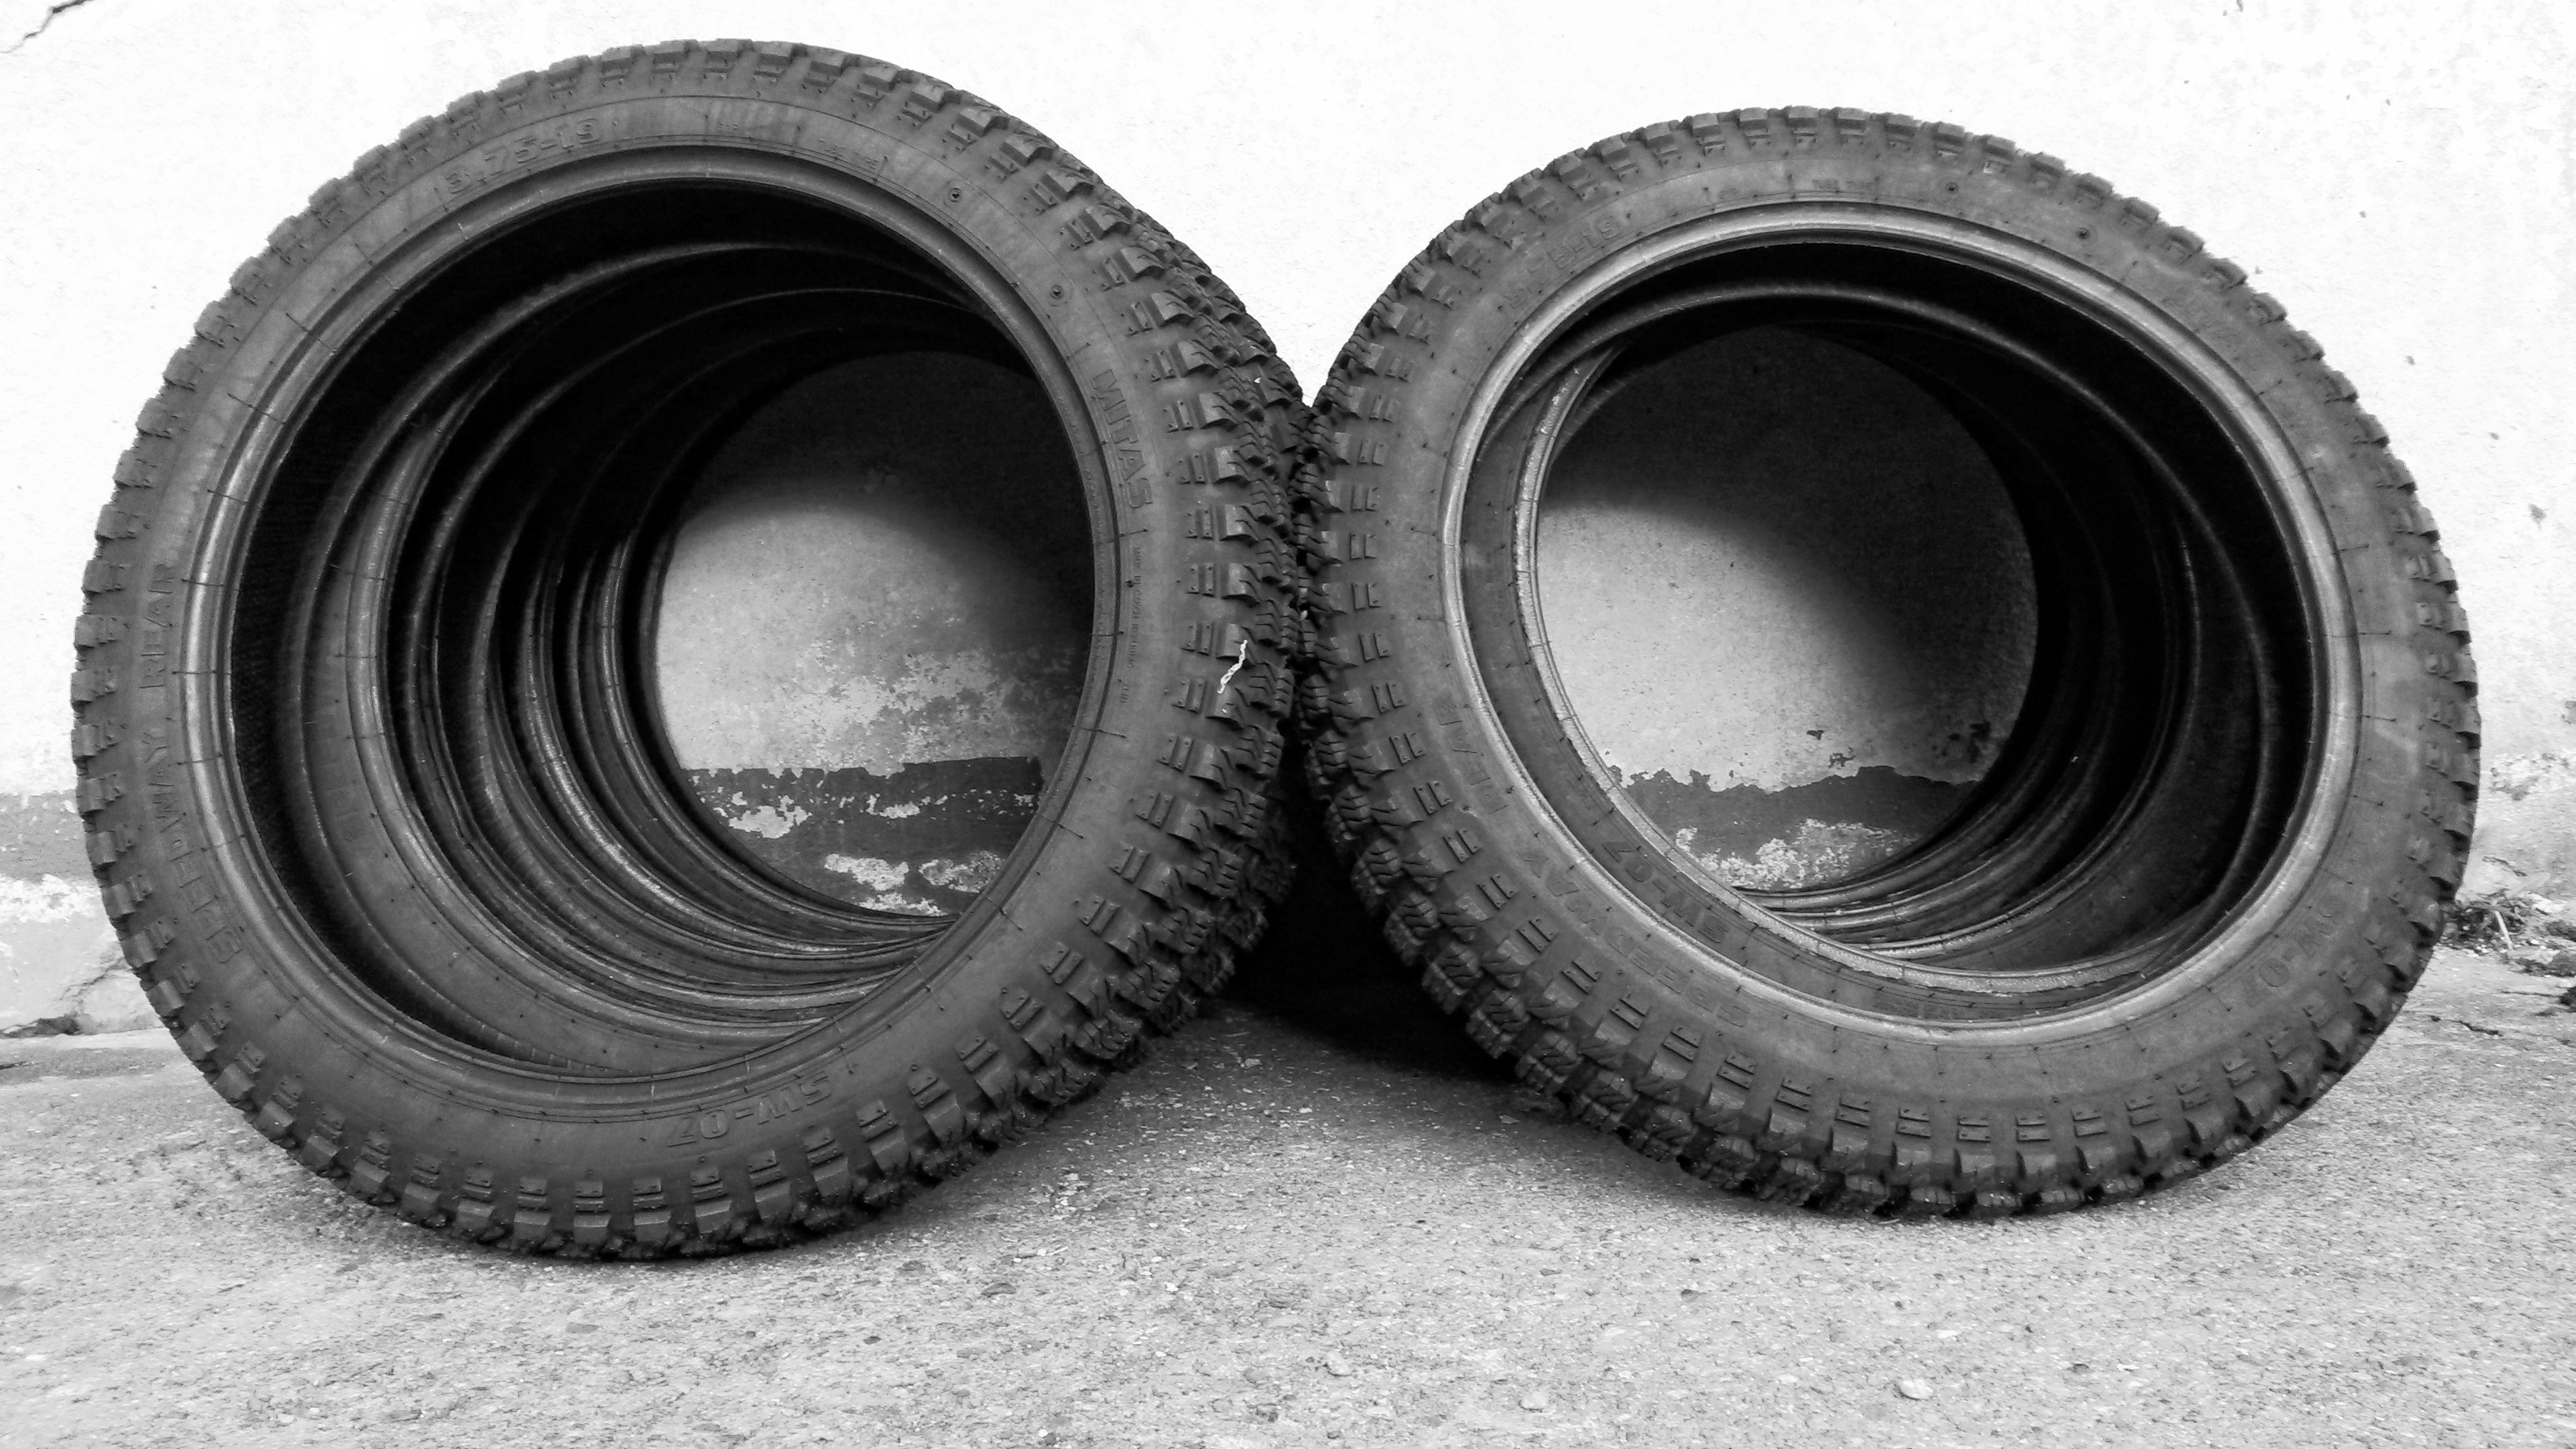 Black Tires · Free Stock Photo